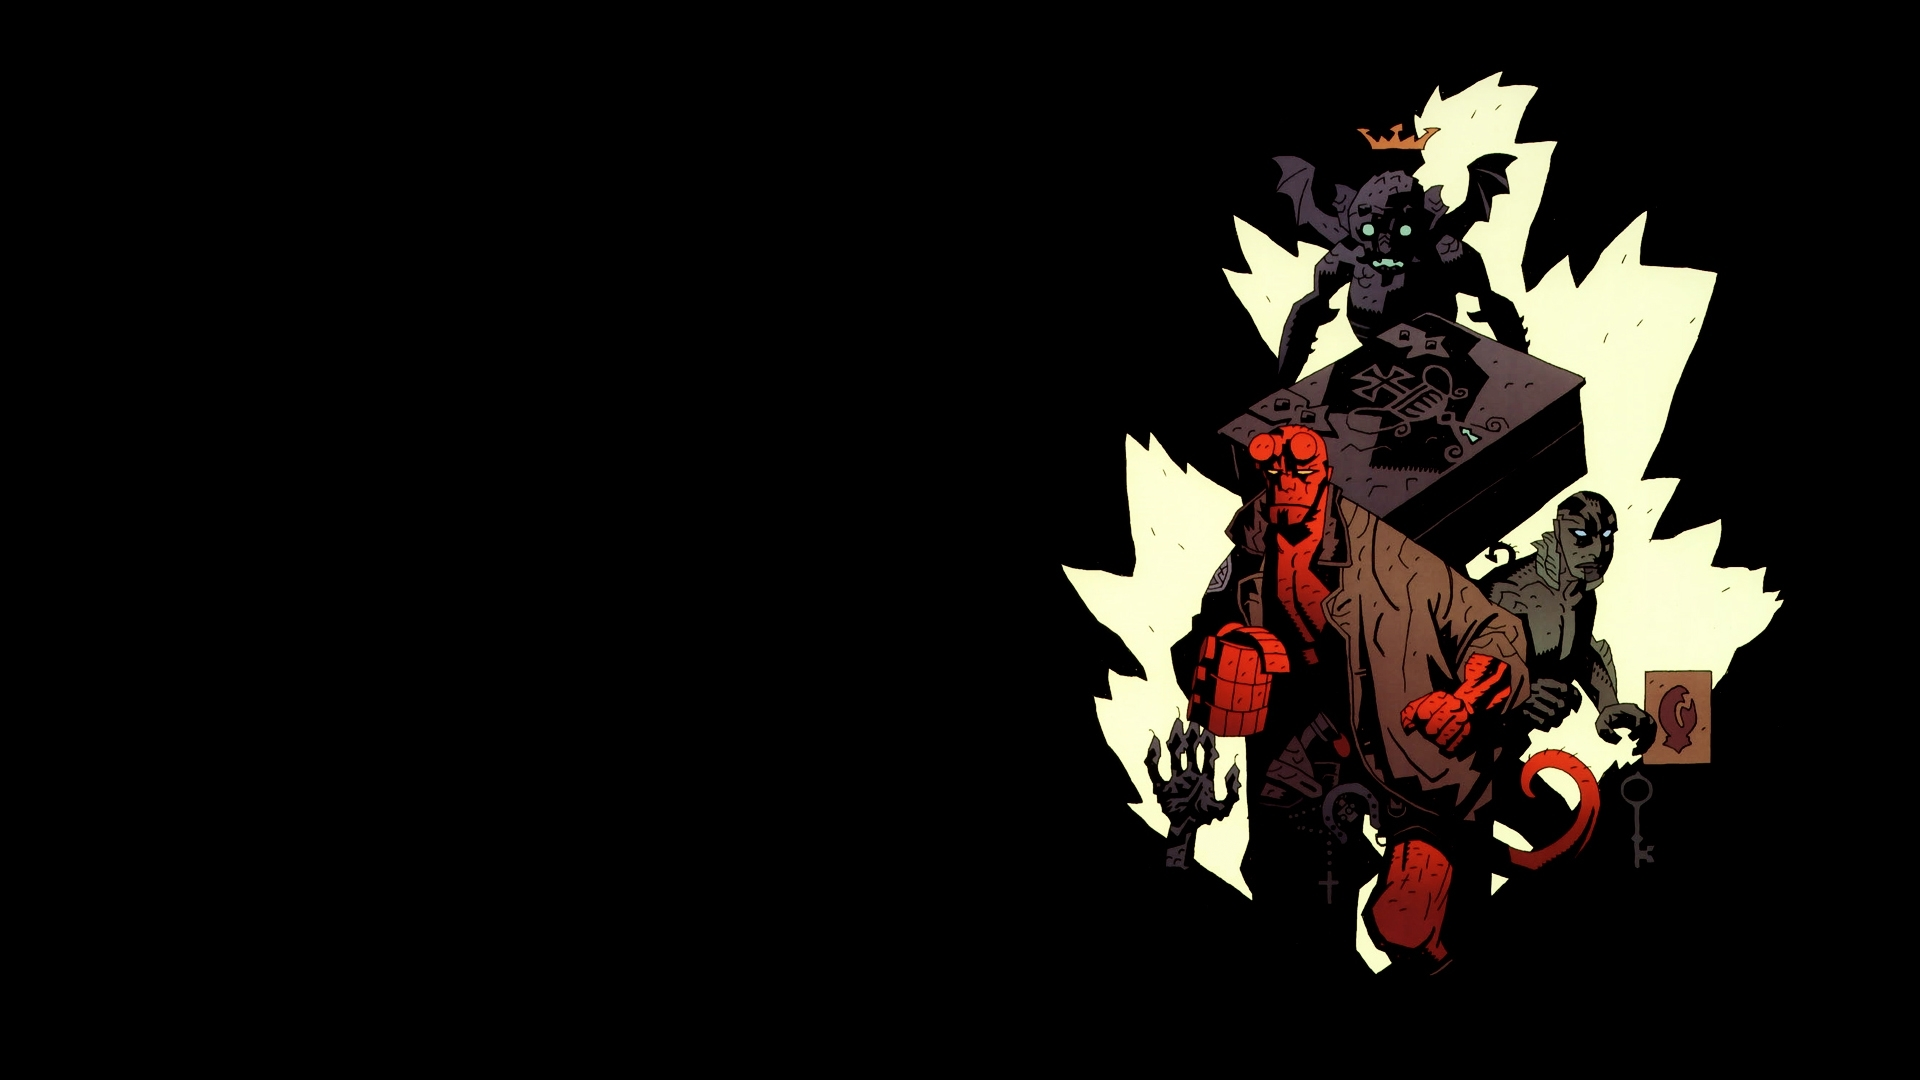 A Huge Thank You To Mike Mignola For The Wonderful Comic Art He Has